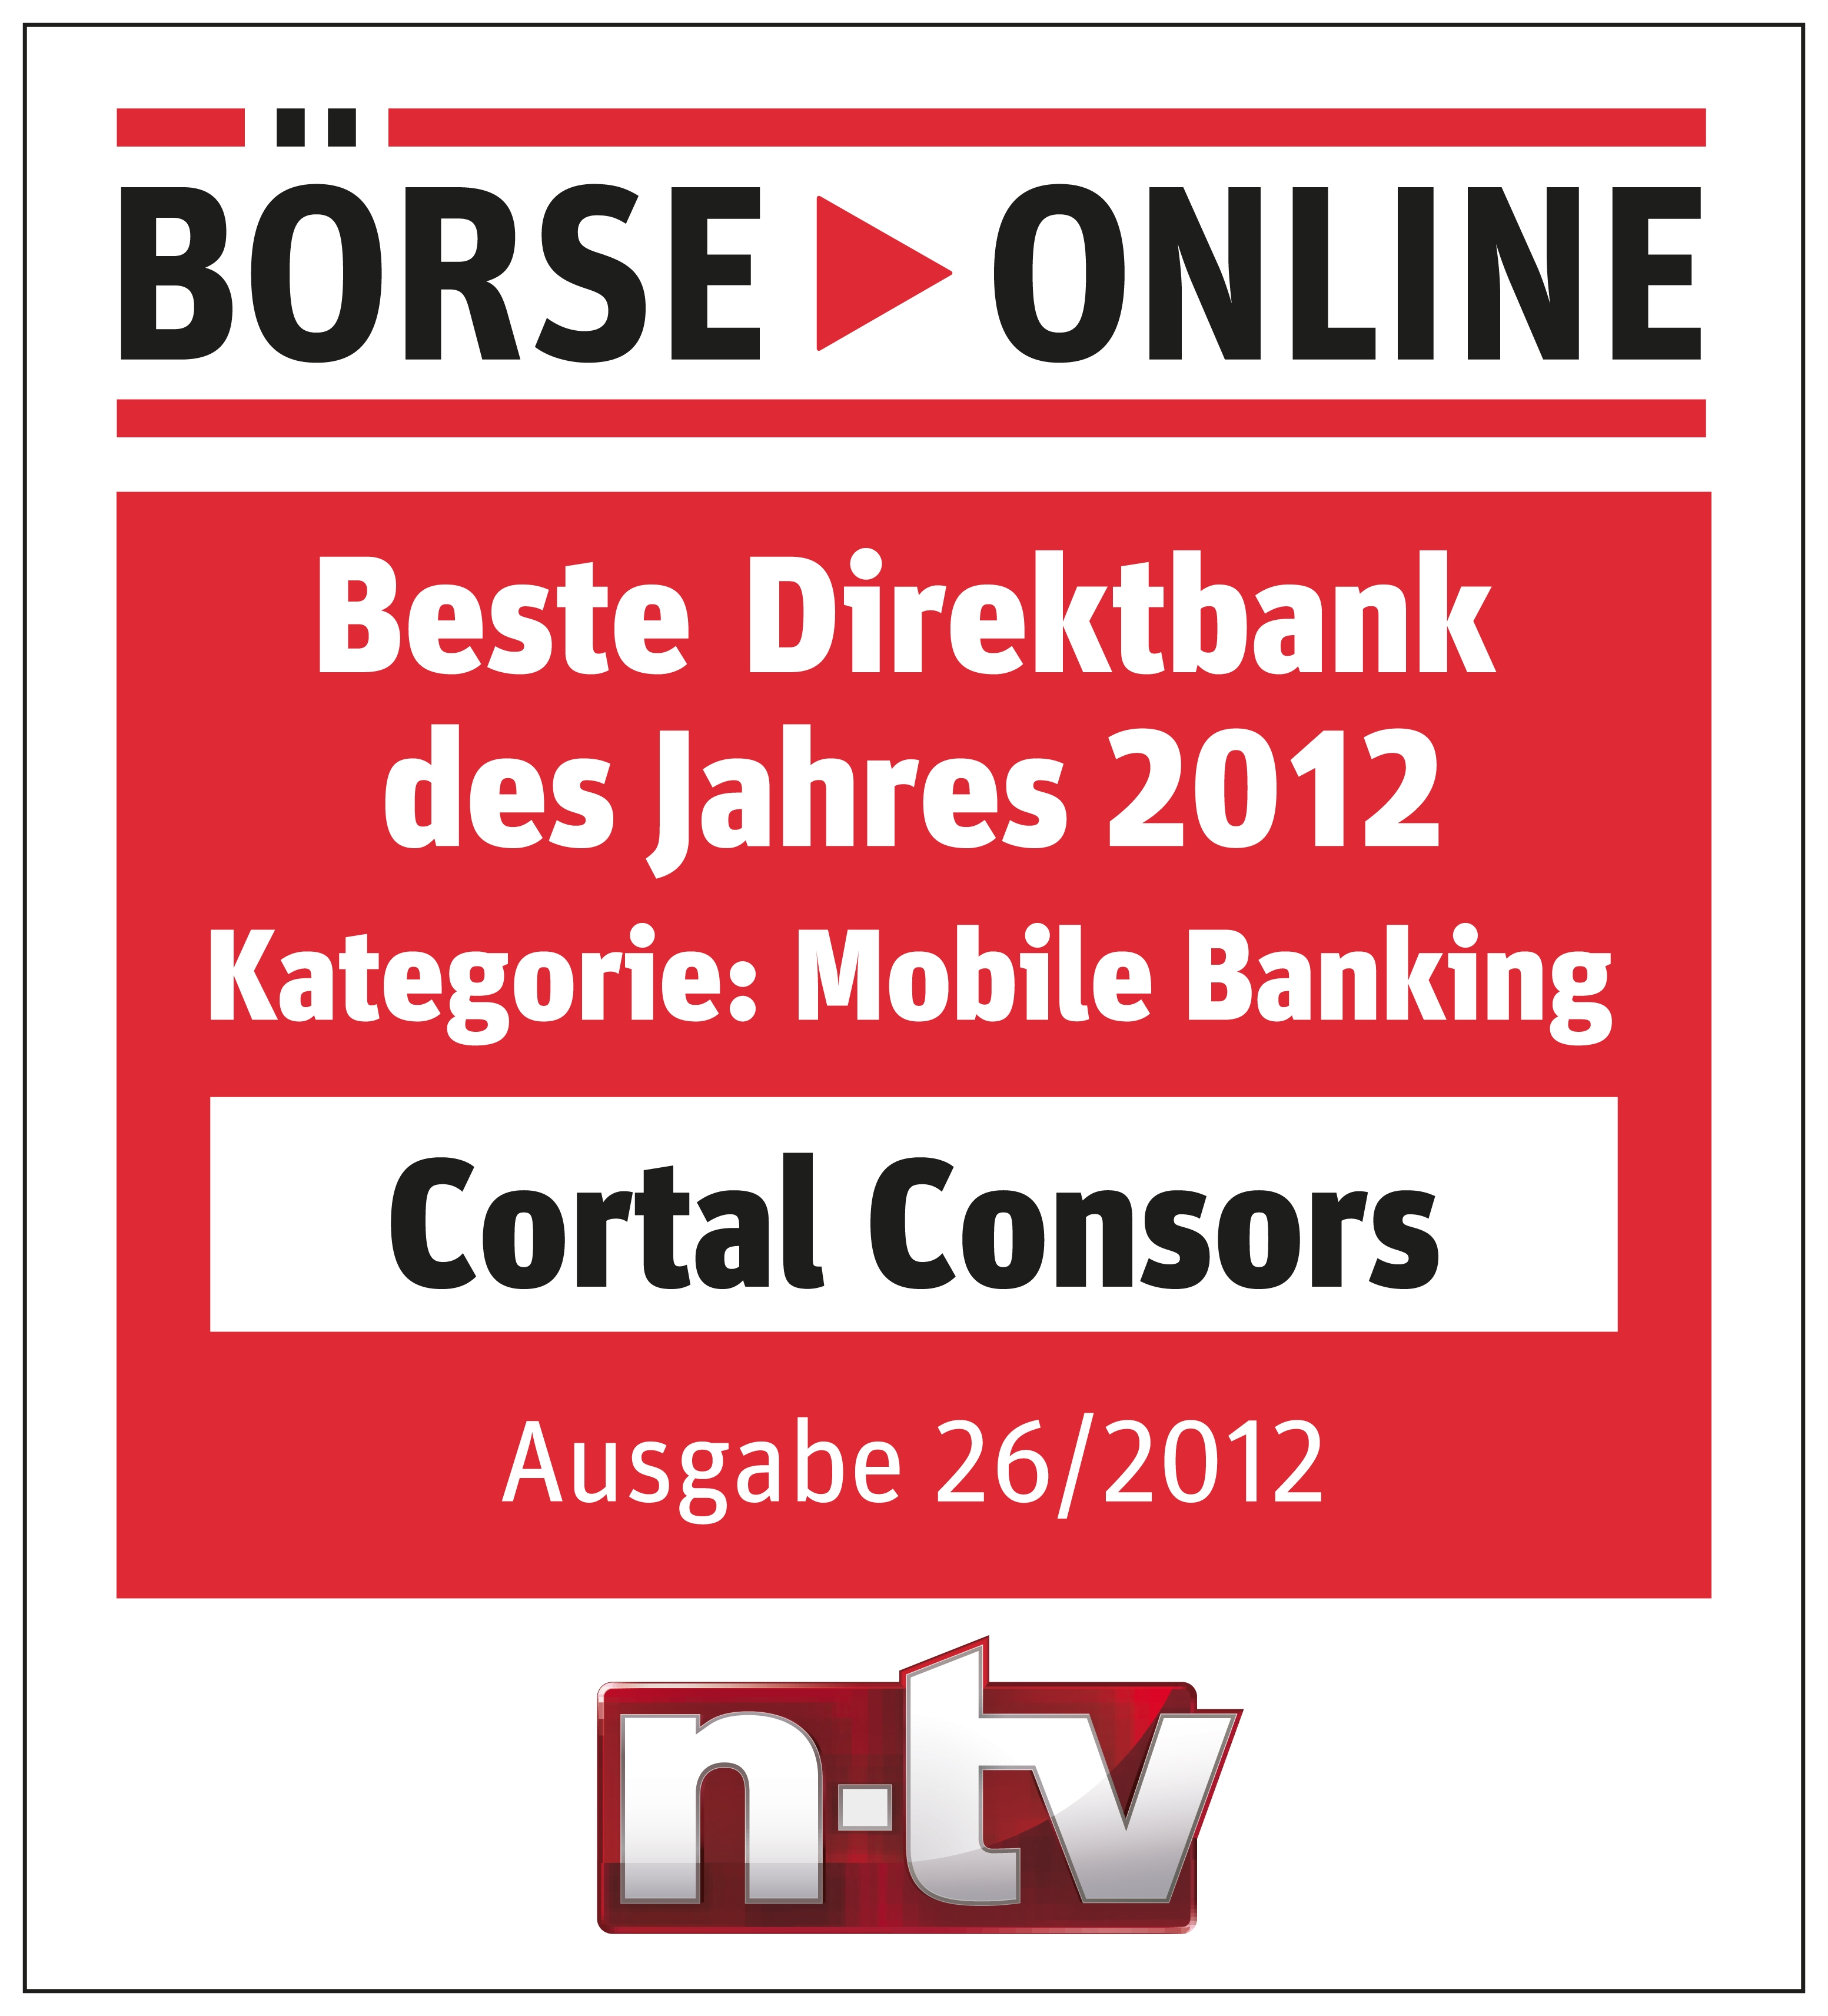 cortal consors ist beste direktbank im mobile banking bnp paribas deutschland. Black Bedroom Furniture Sets. Home Design Ideas